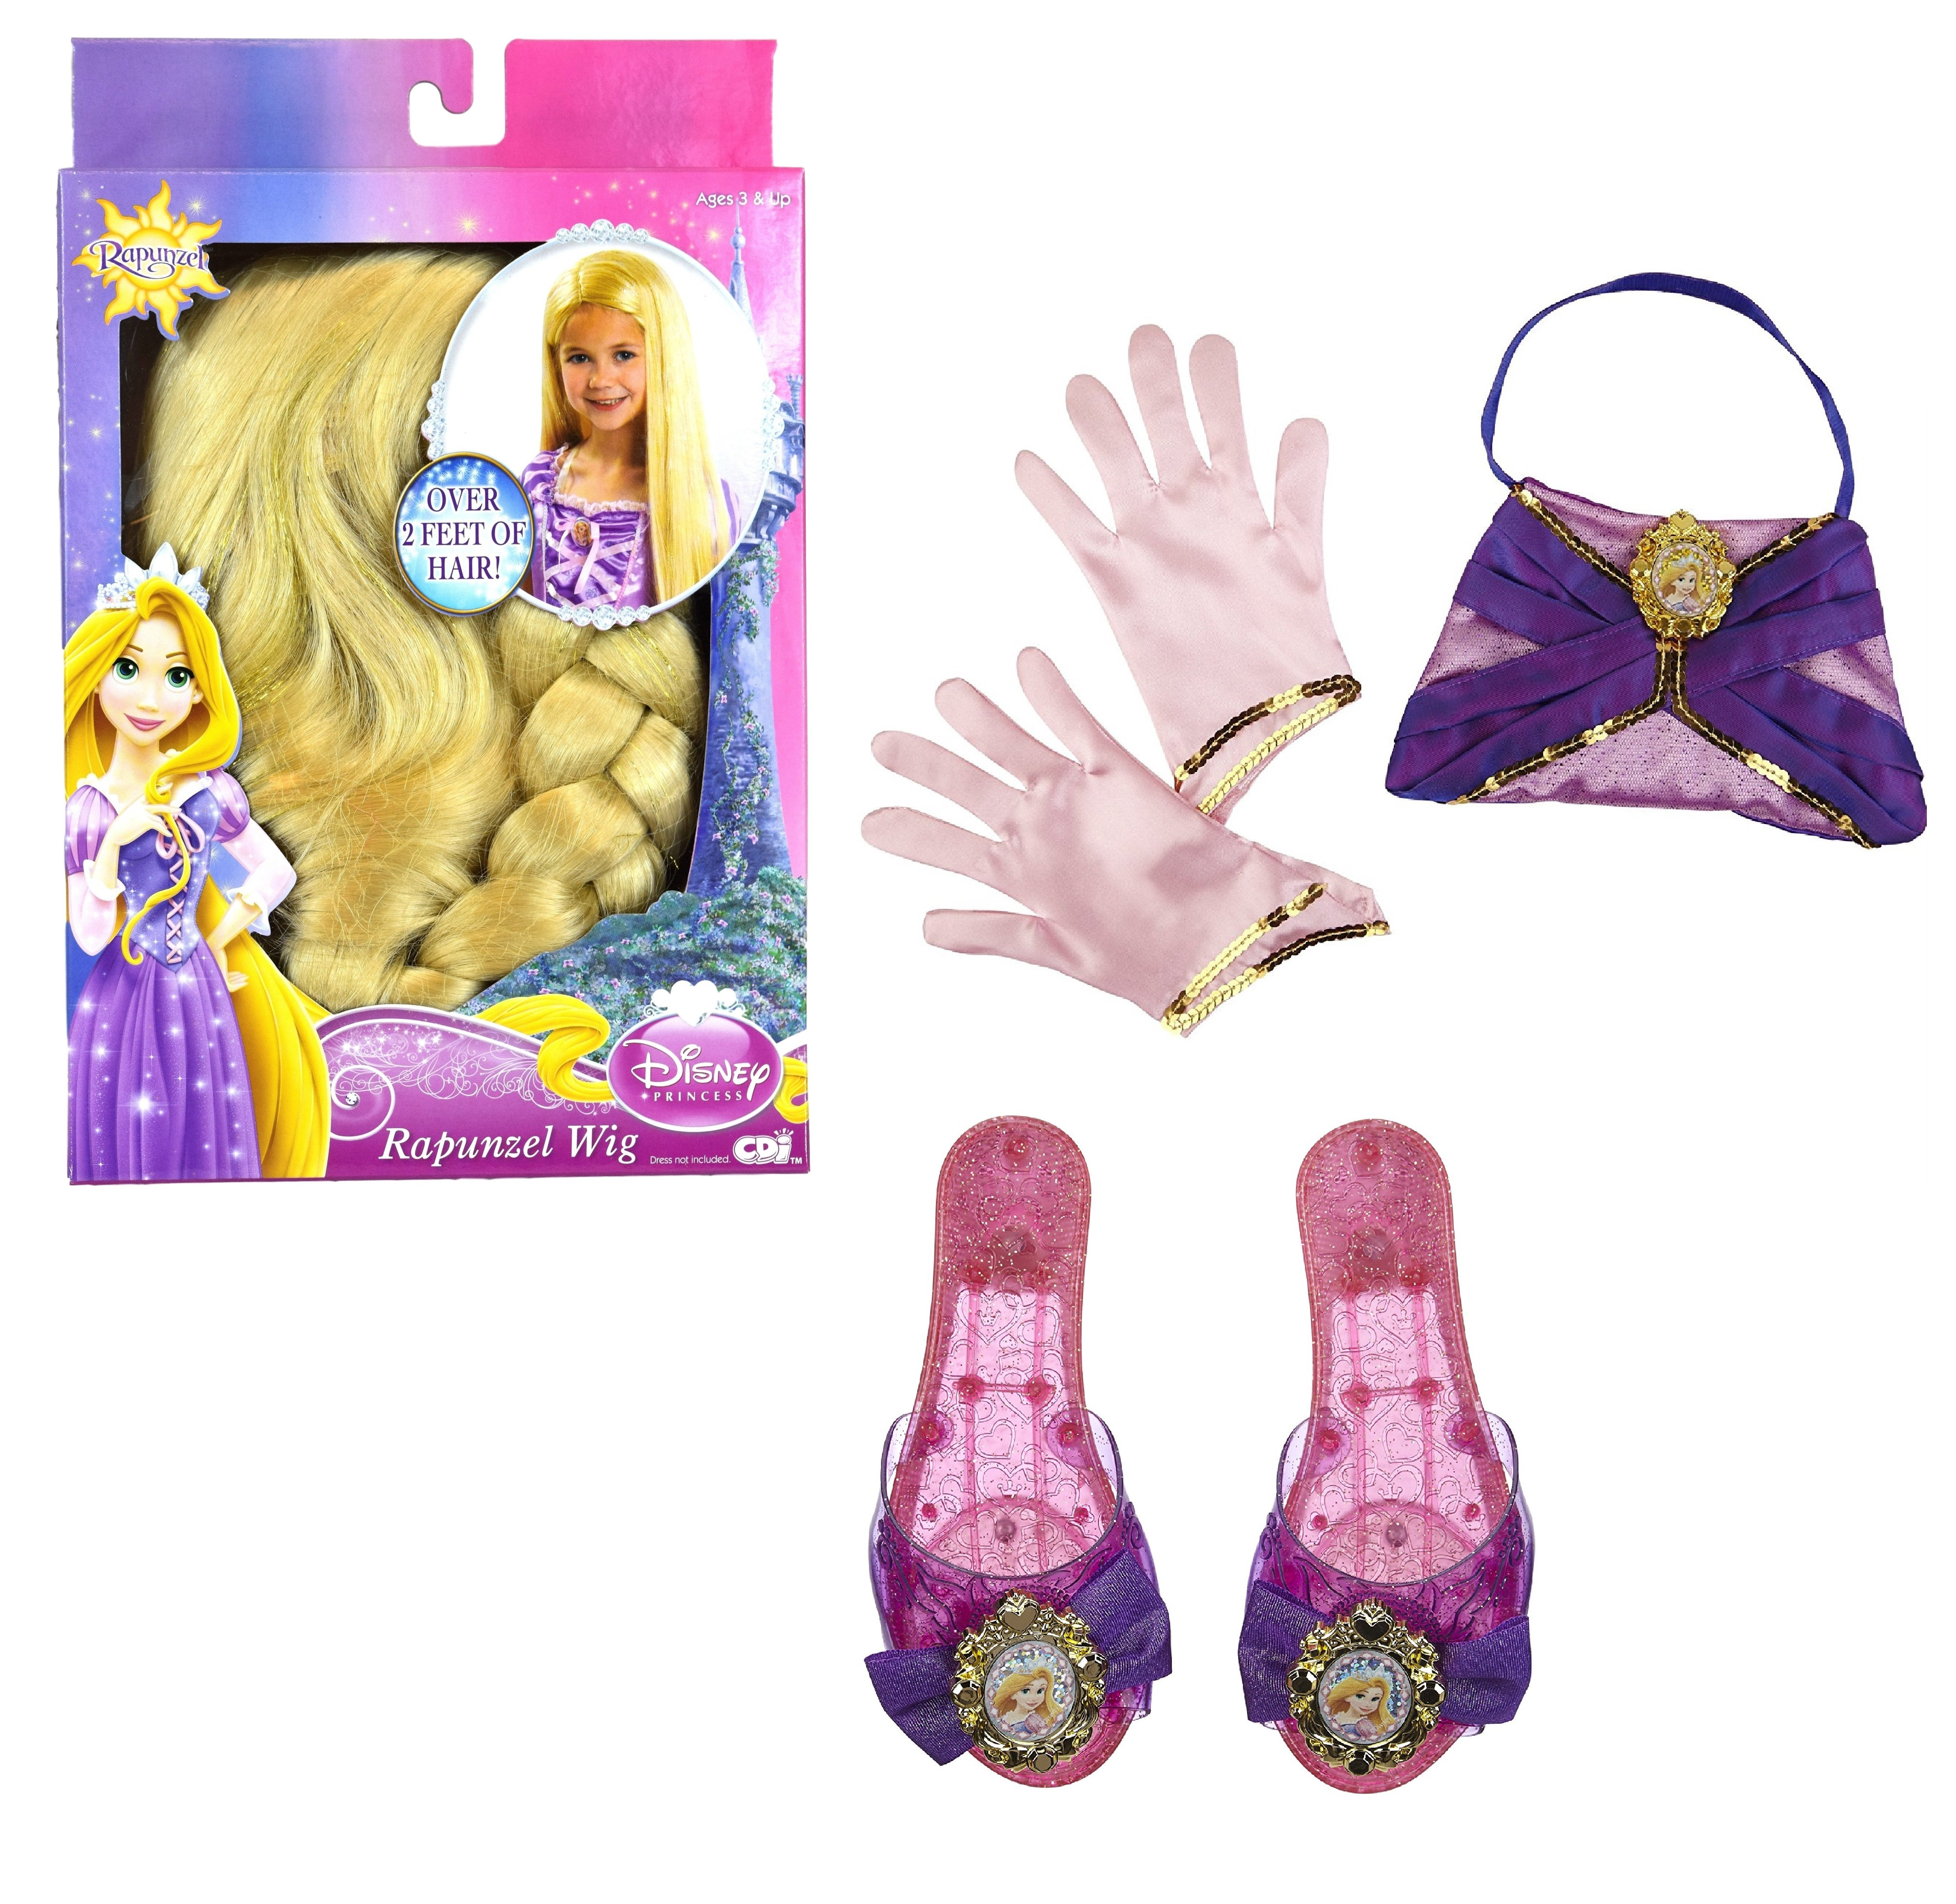 Disney Princess Tangled Rapunzel Dress Up Costume Accessories Set - Wig, Enchanted Evening Purse, Gloves, and Shoes